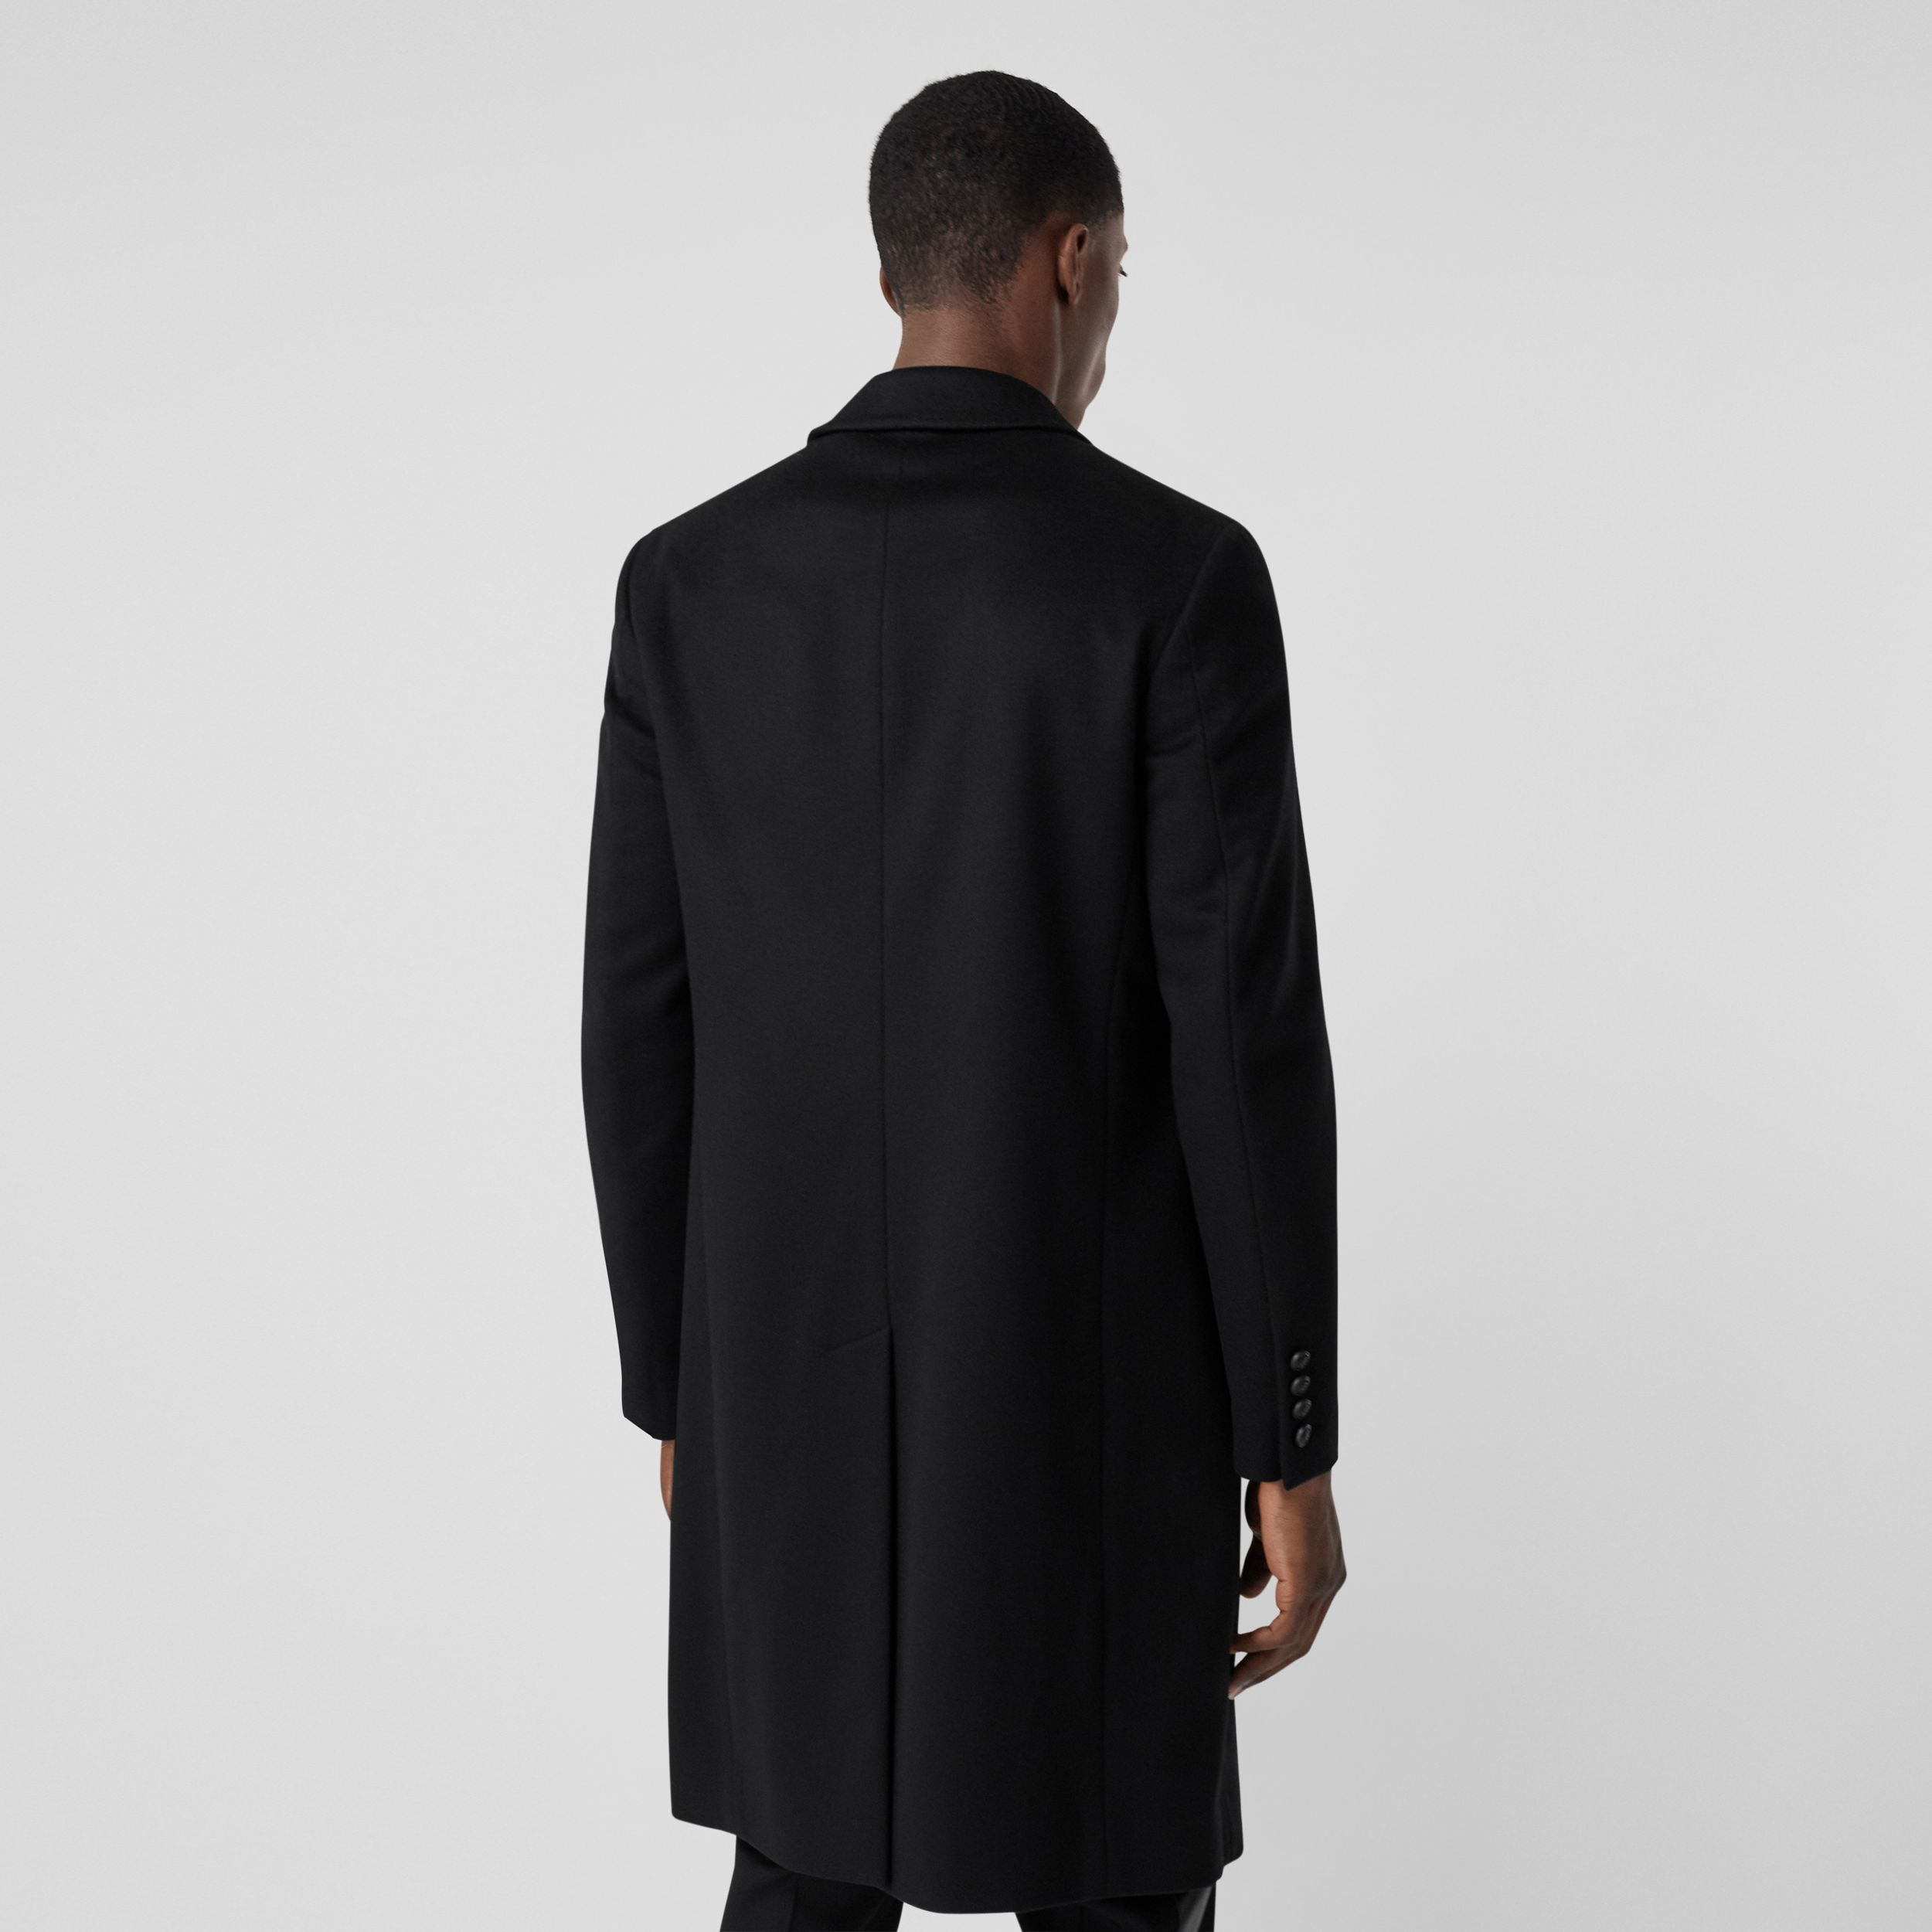 Button Detail Wool Cashmere Tailored Coat in Black - Men | Burberry - 3